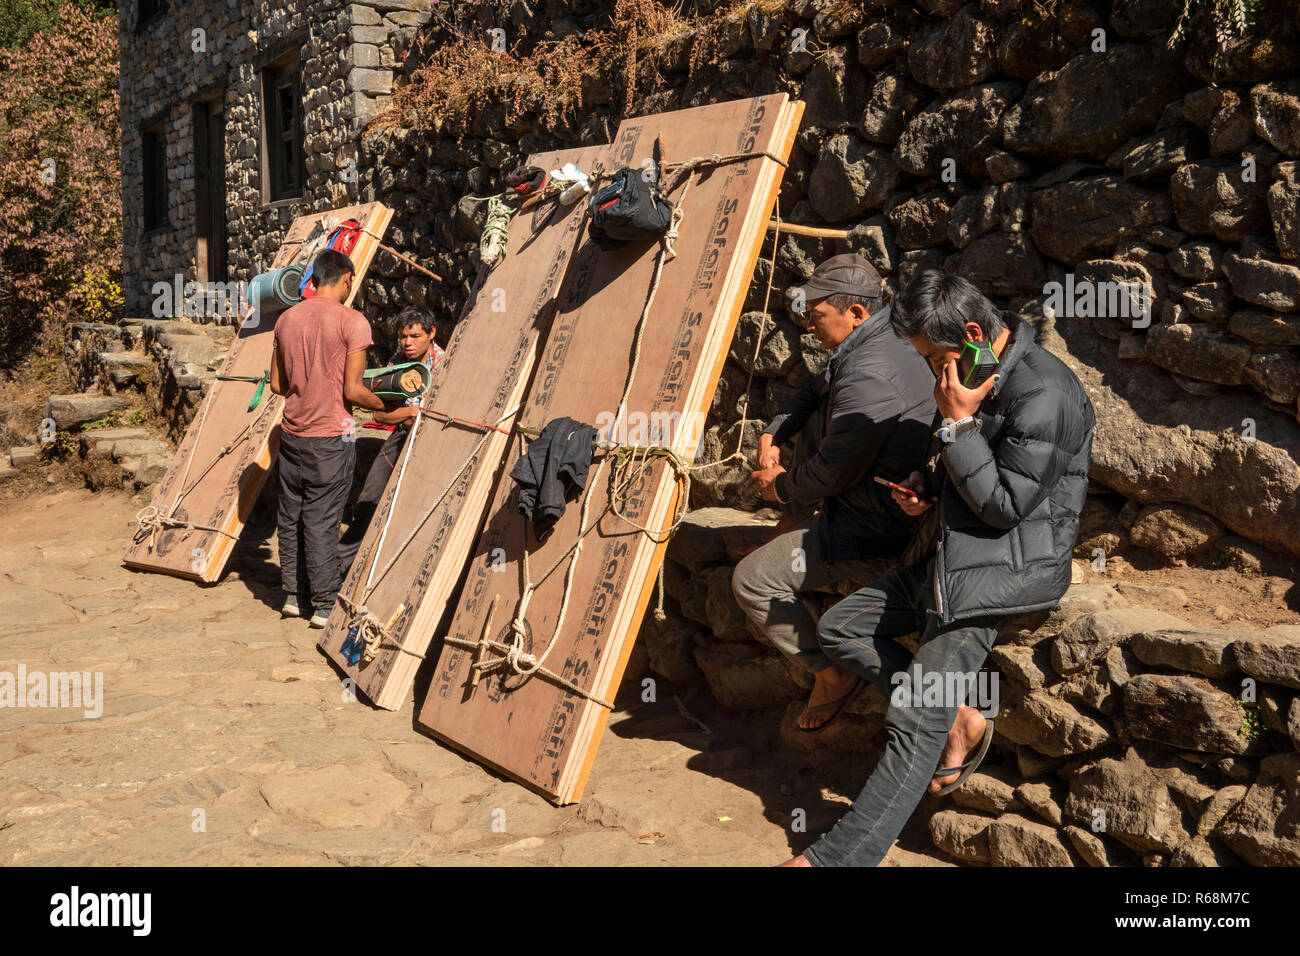 Nepal, Lukla, Lomdza, porters carrying loads of plywood resting beside path - Stock Image